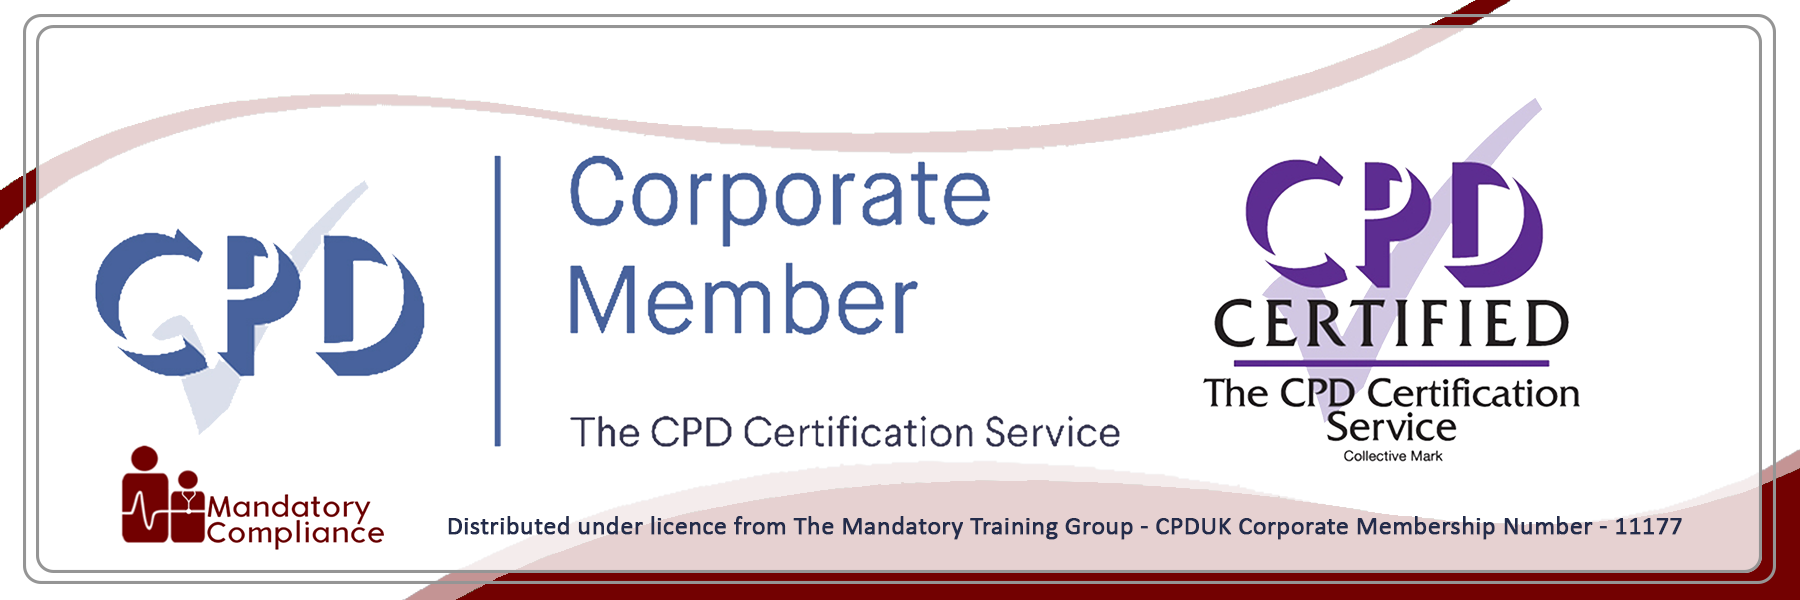 Interpersonal Skills Training - Online Training Course - CPD Accredited - Mandatory Compliance UK -